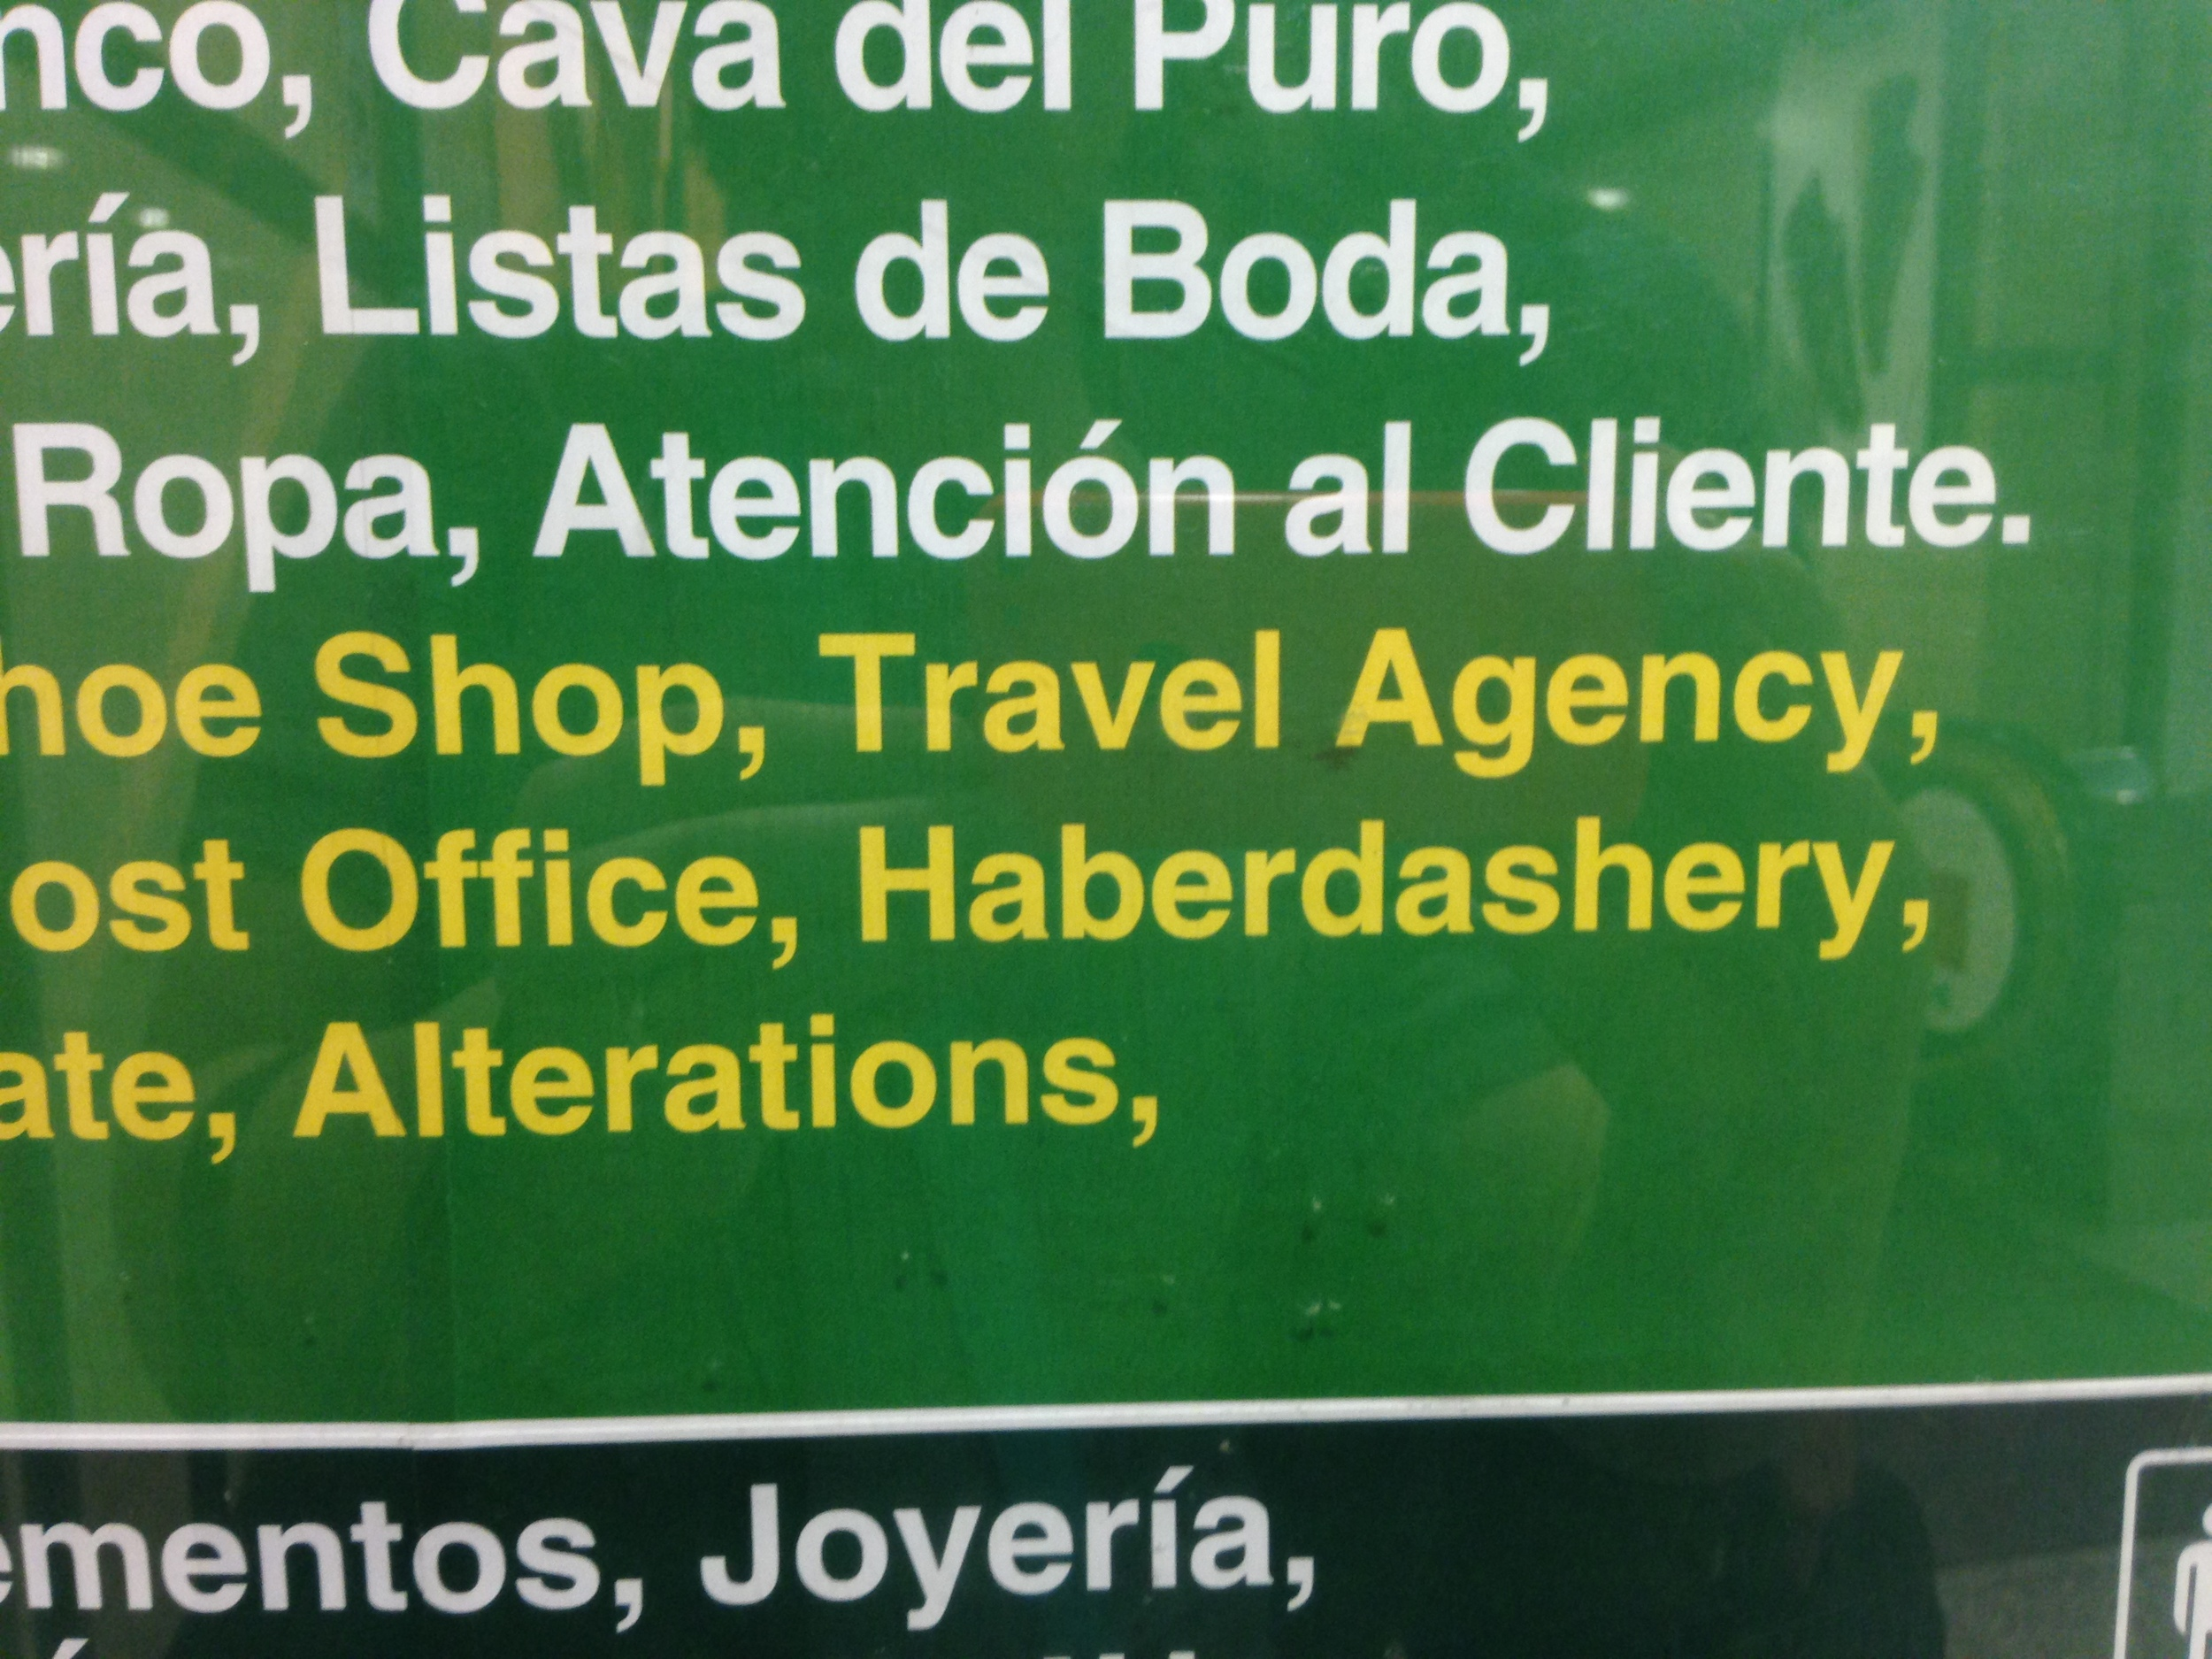 Haberdashery? I didn't realize that we were in jolly old England. Sometimes translations are really funny here!